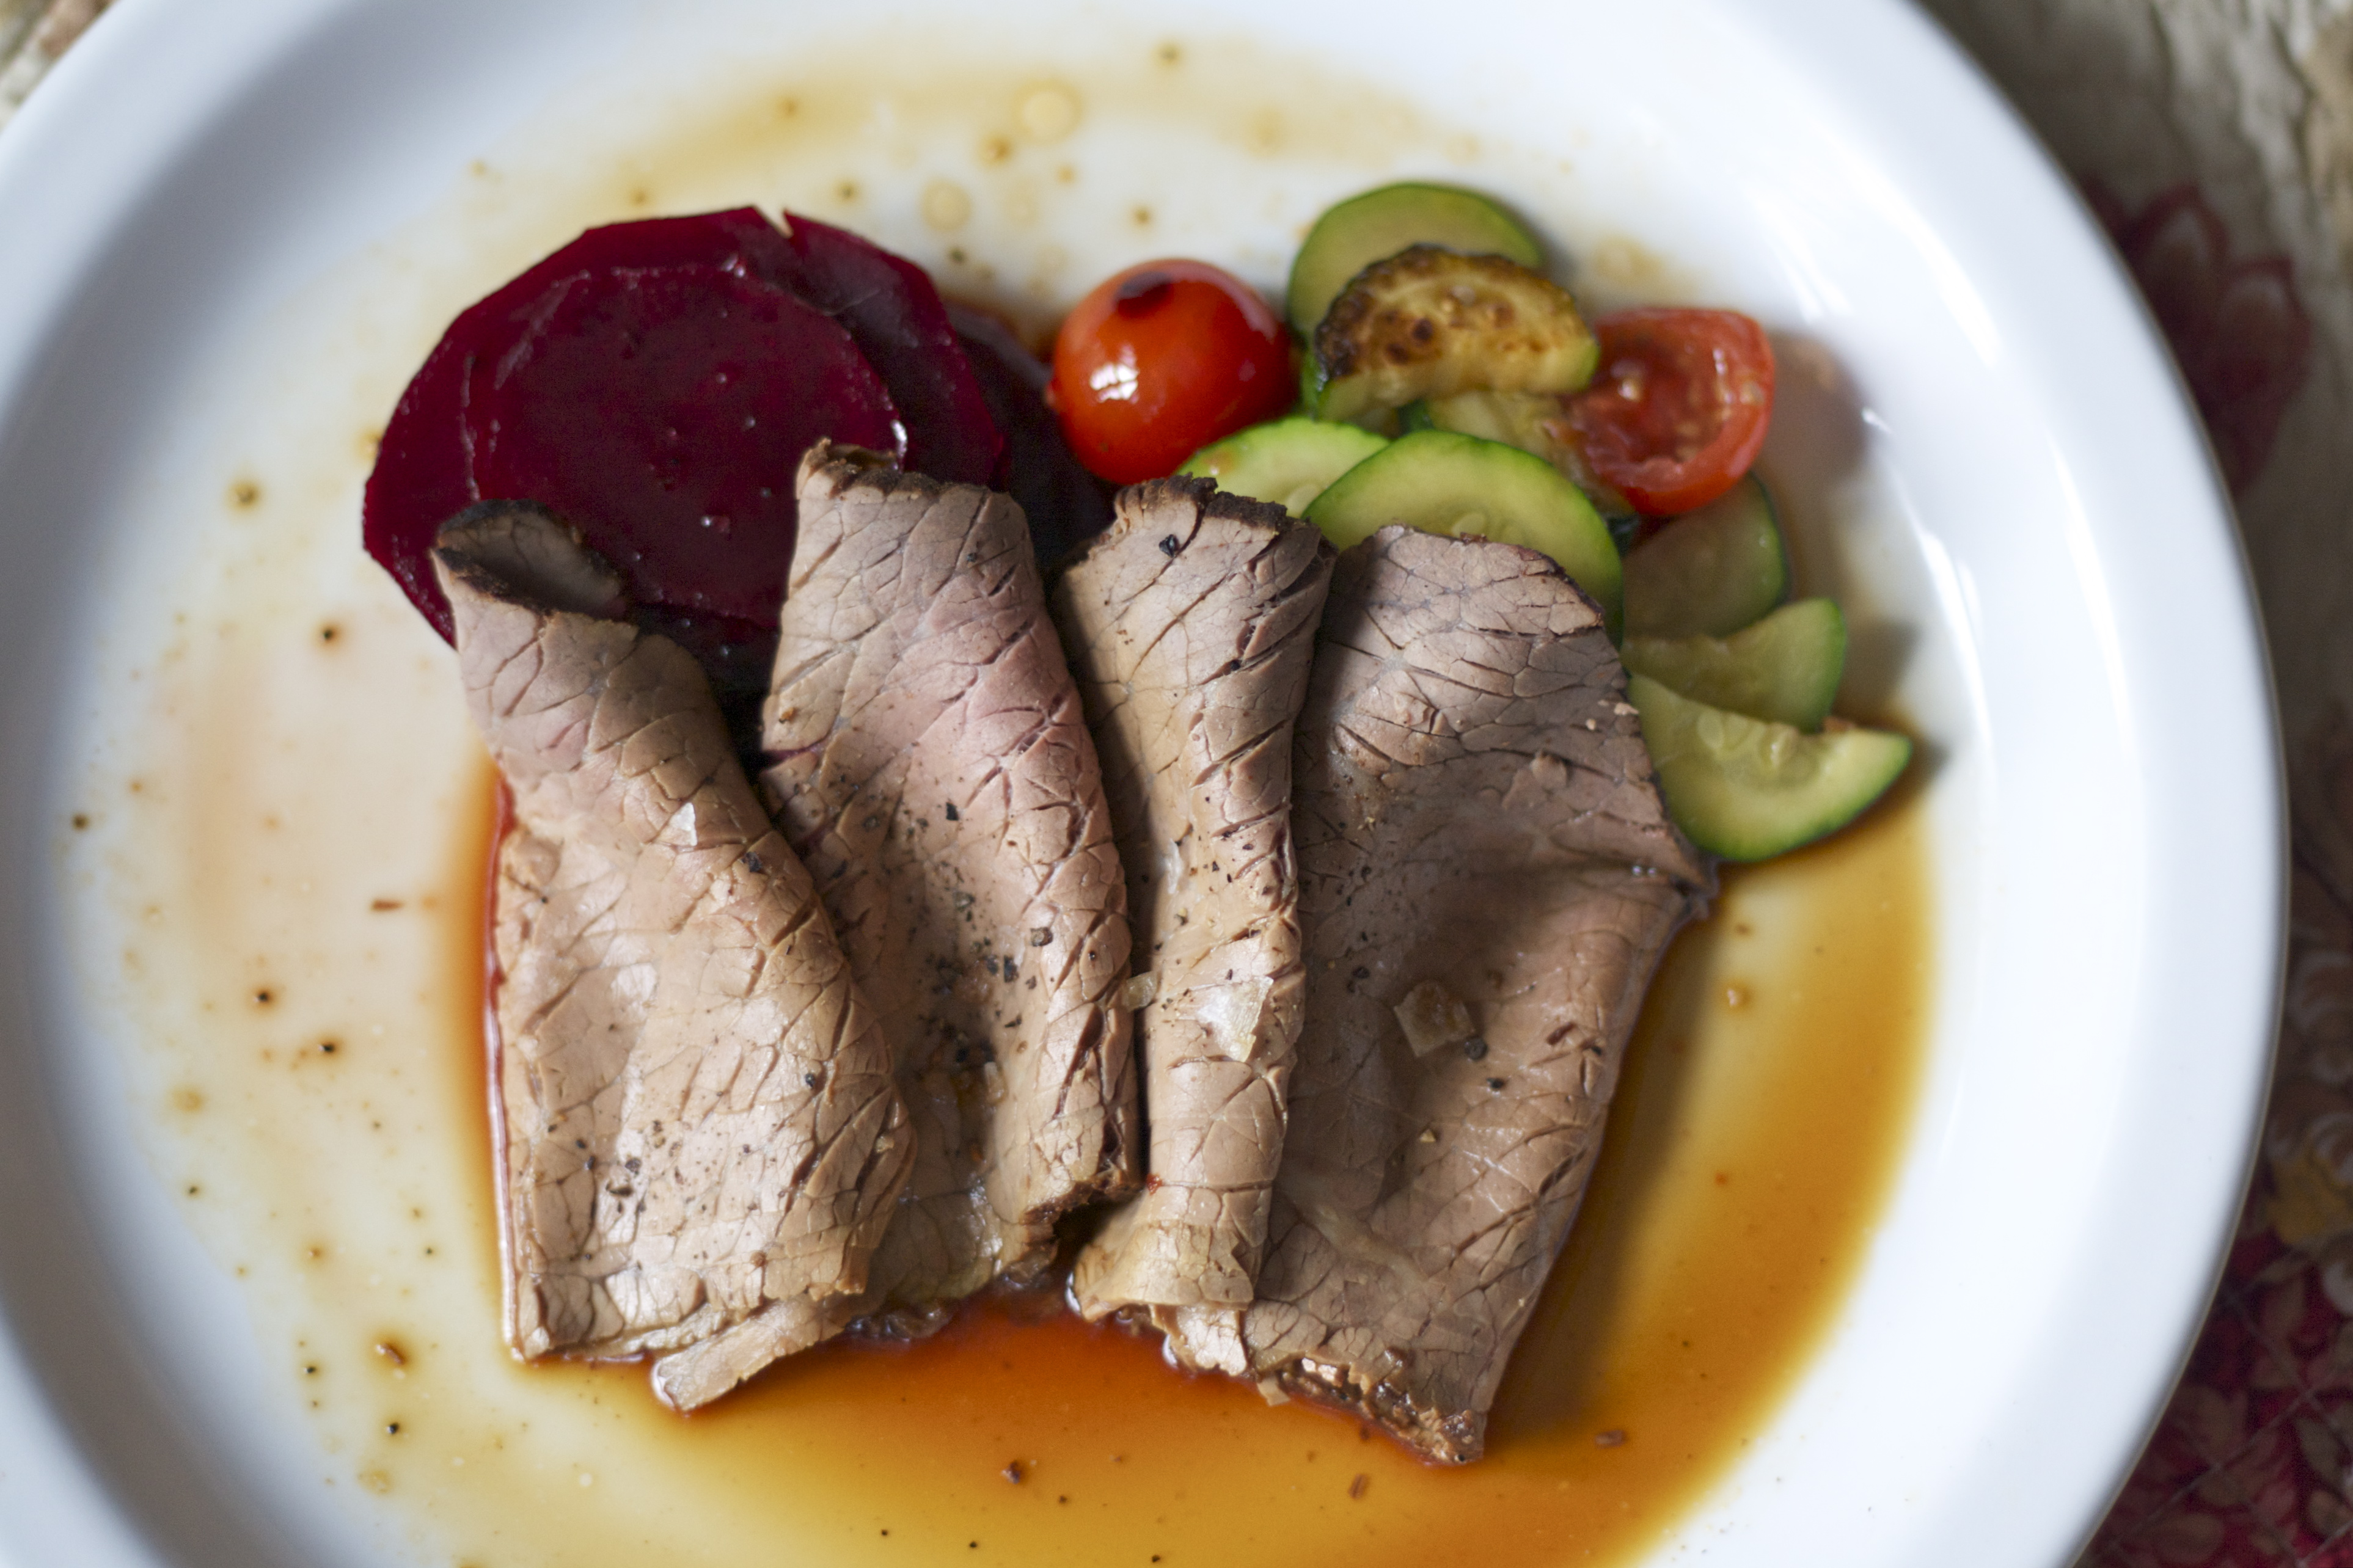 GAPS diet legal roast beef recipe from Christina@ Edible Times.